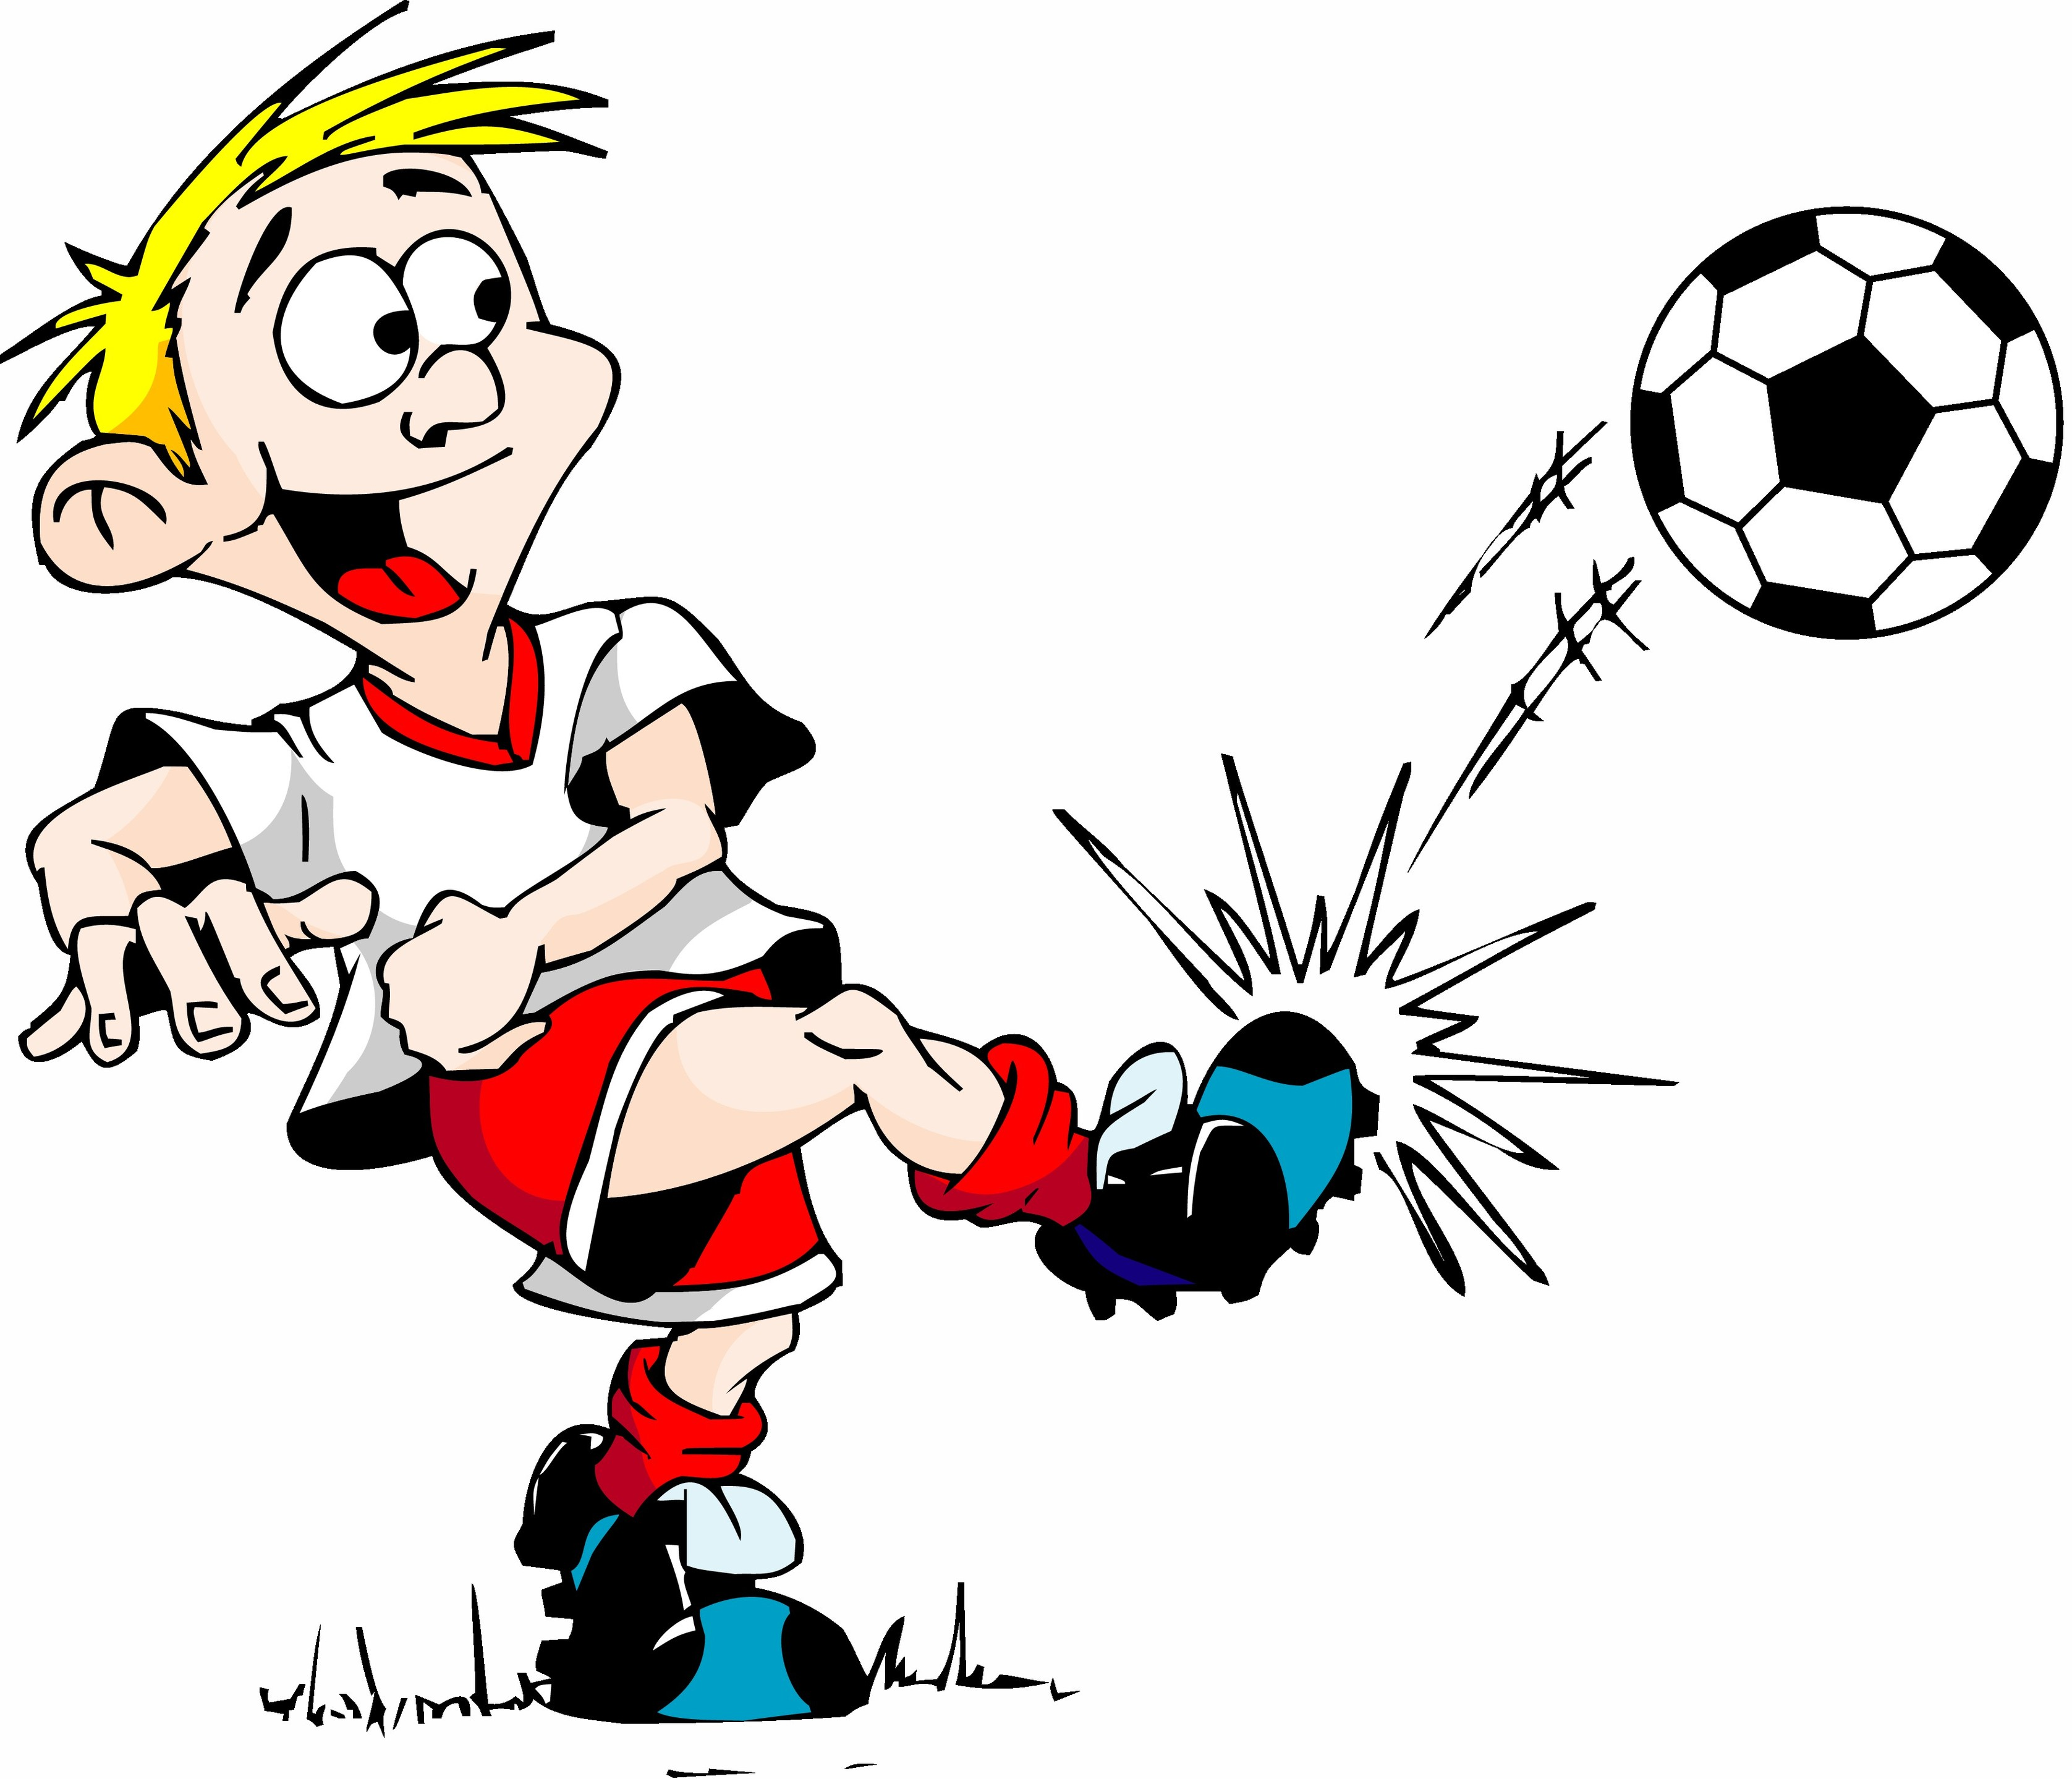 soccer team clipart at getdrawings com free for personal use rh getdrawings com clip art soccer ball images clip art soccer ball images